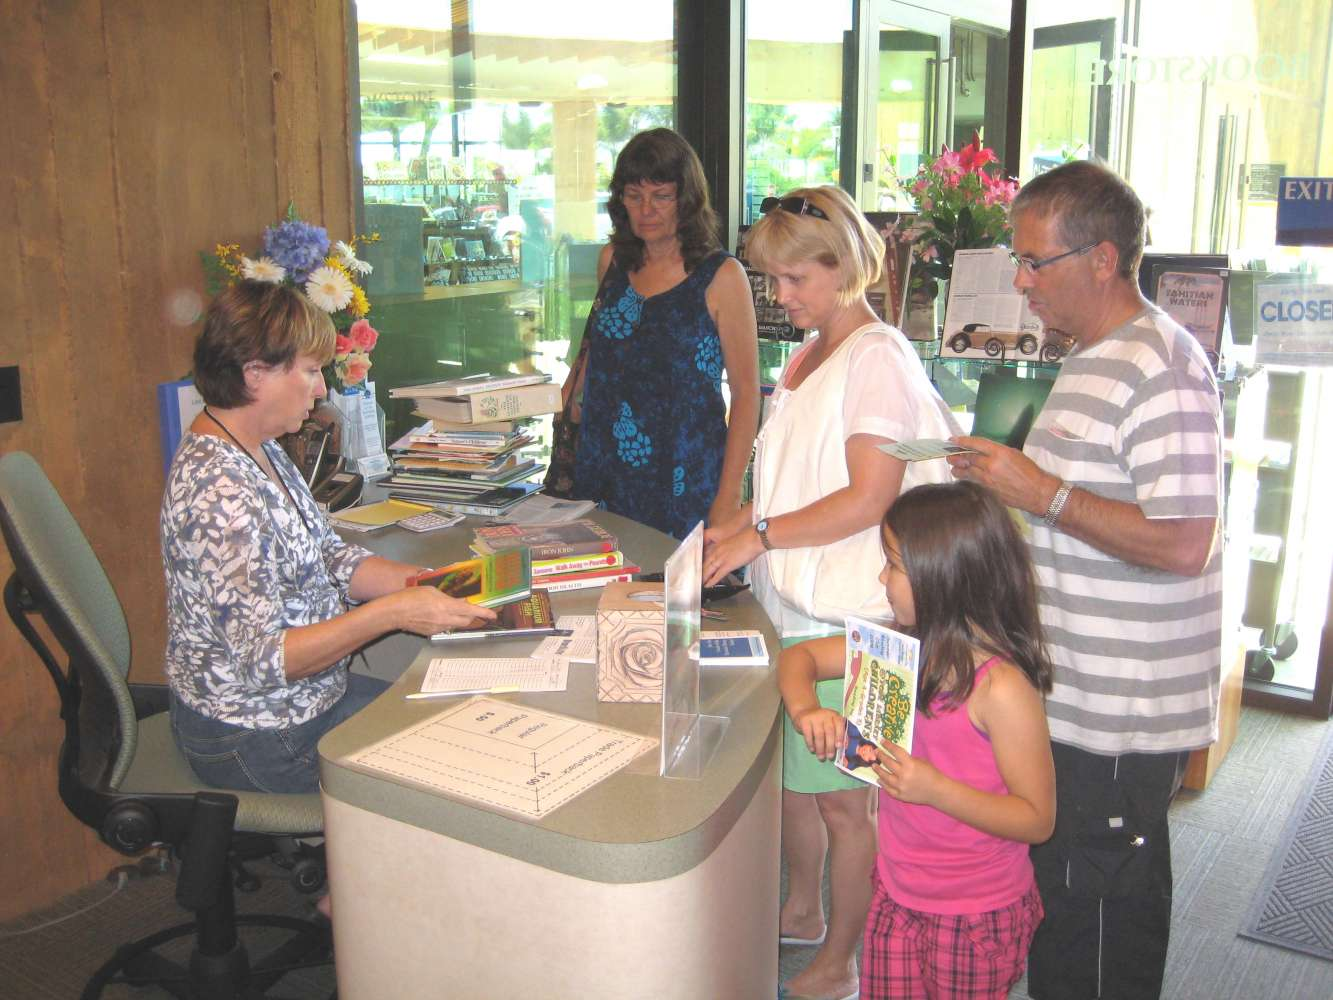 Friends of the Encinitas Library Bookstore cashiers desk with customers waiting to purchase their books.